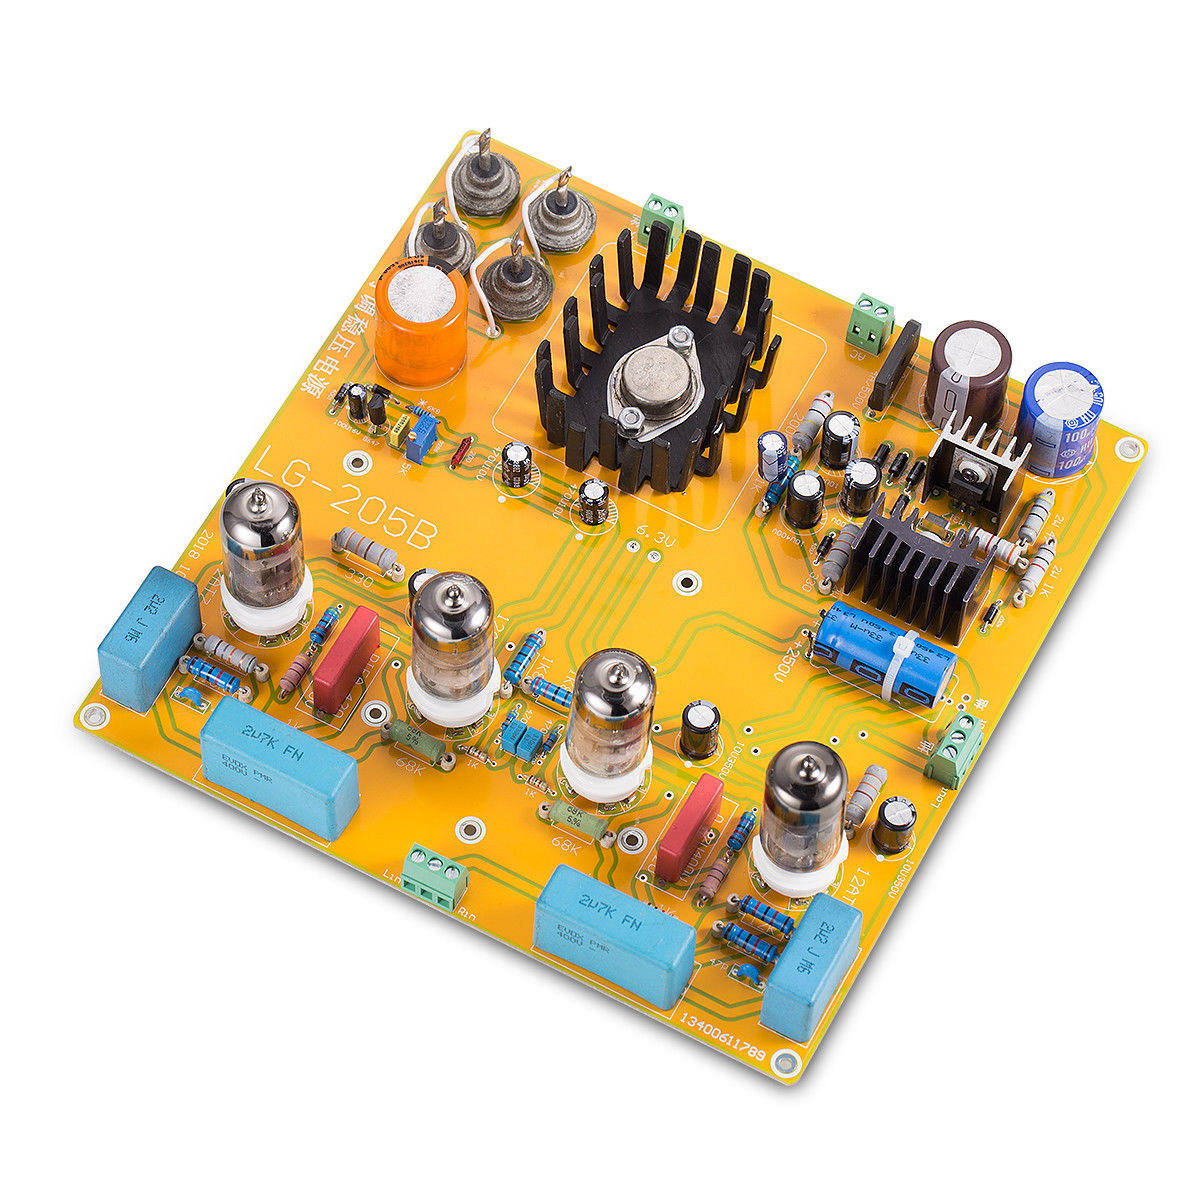 HiFi Stereo 6N1+6N2 Vacuum Tube Pre-amplifier Board Preamp Inspired by Matisse